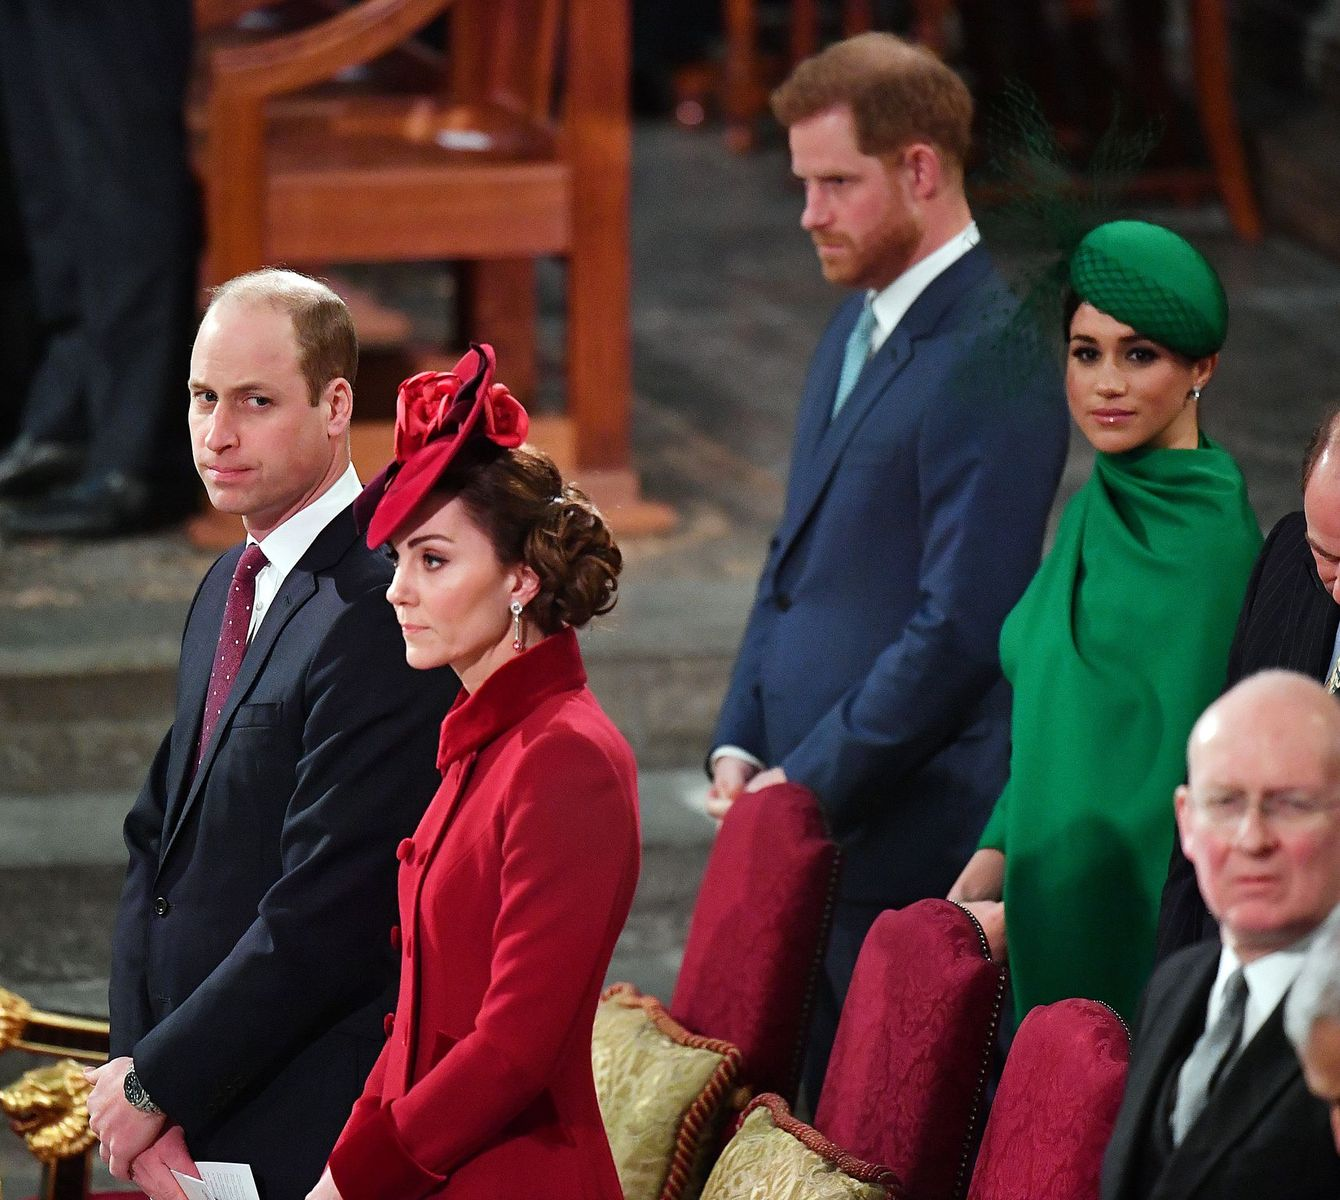 Prince William, Duke of Cambridge, Kate Middleton, Duchess of Cambridge, Prince Harry, Duke of Sussex, and Meghan Markle, Duchess of Sussex at the Commonwealth Day Service 2020 in London, England | Photo: Phil Harris - WPA Pool/Getty Images